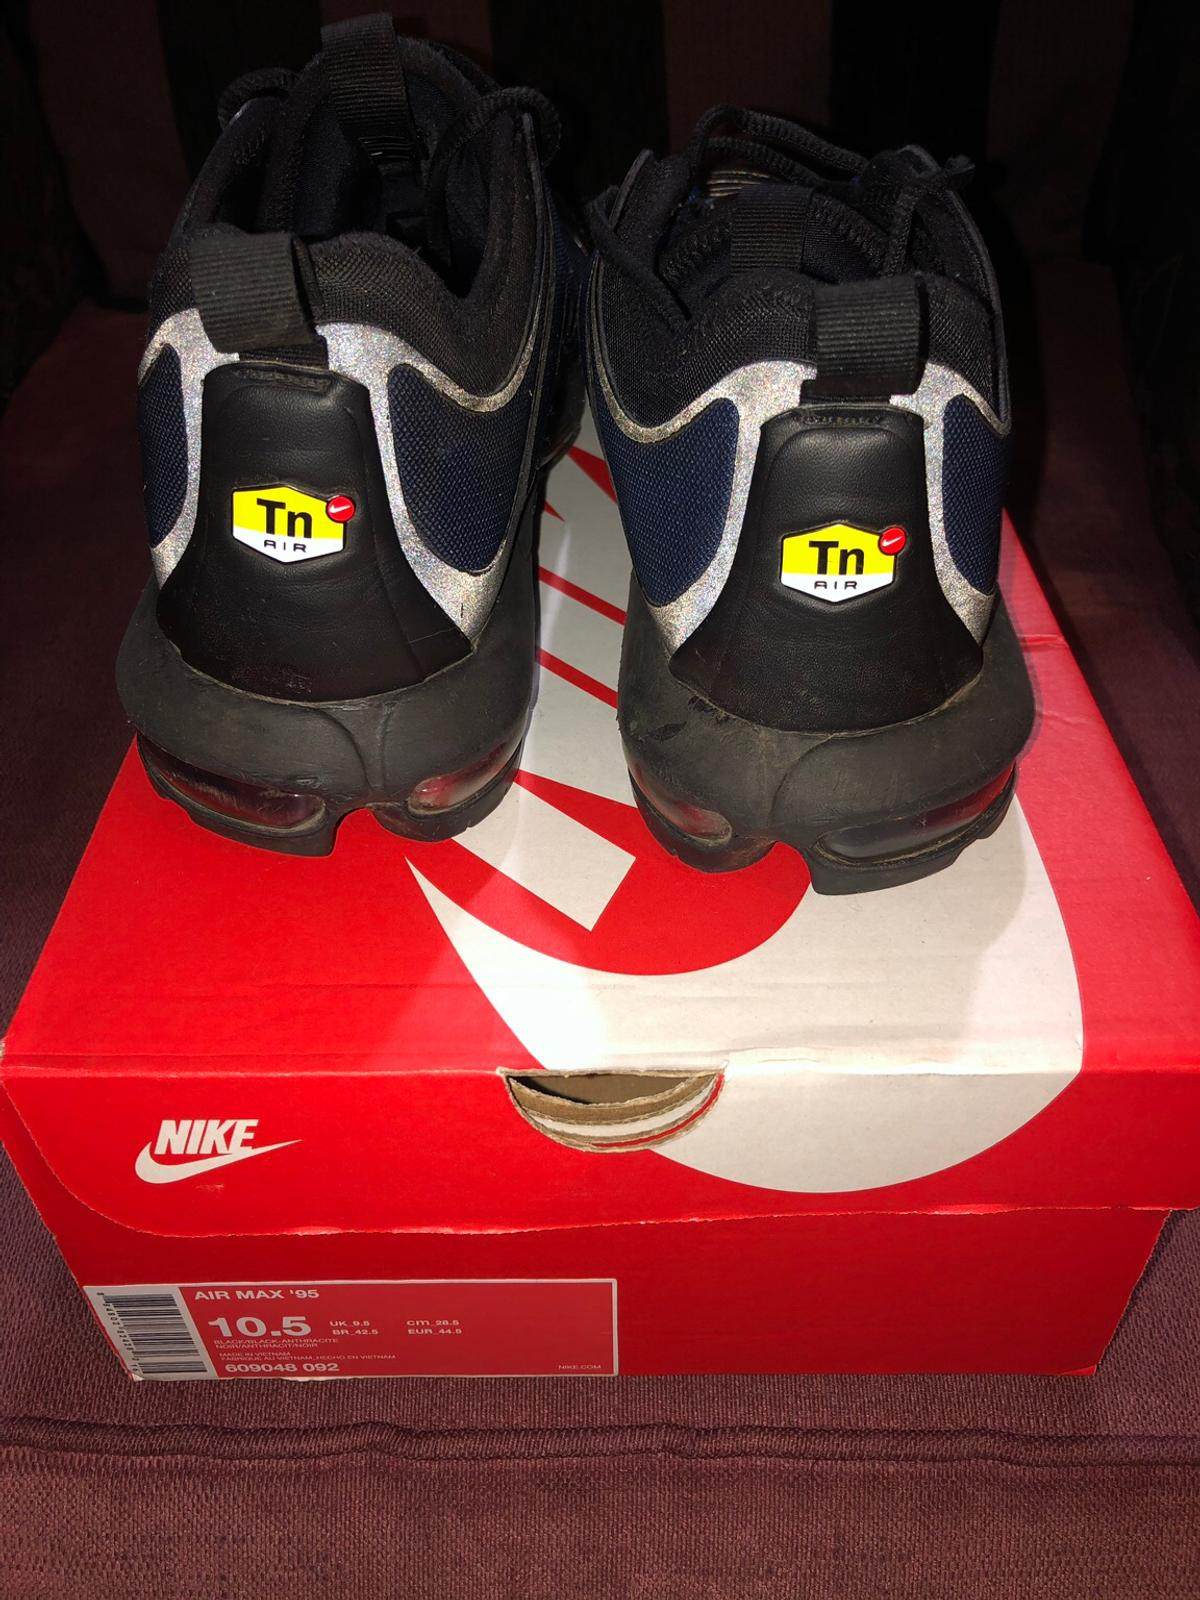 new style 50bac 34c21 Nike Tn Ultra Air Max size 11 in Wyre Forest for £50.00 for ...